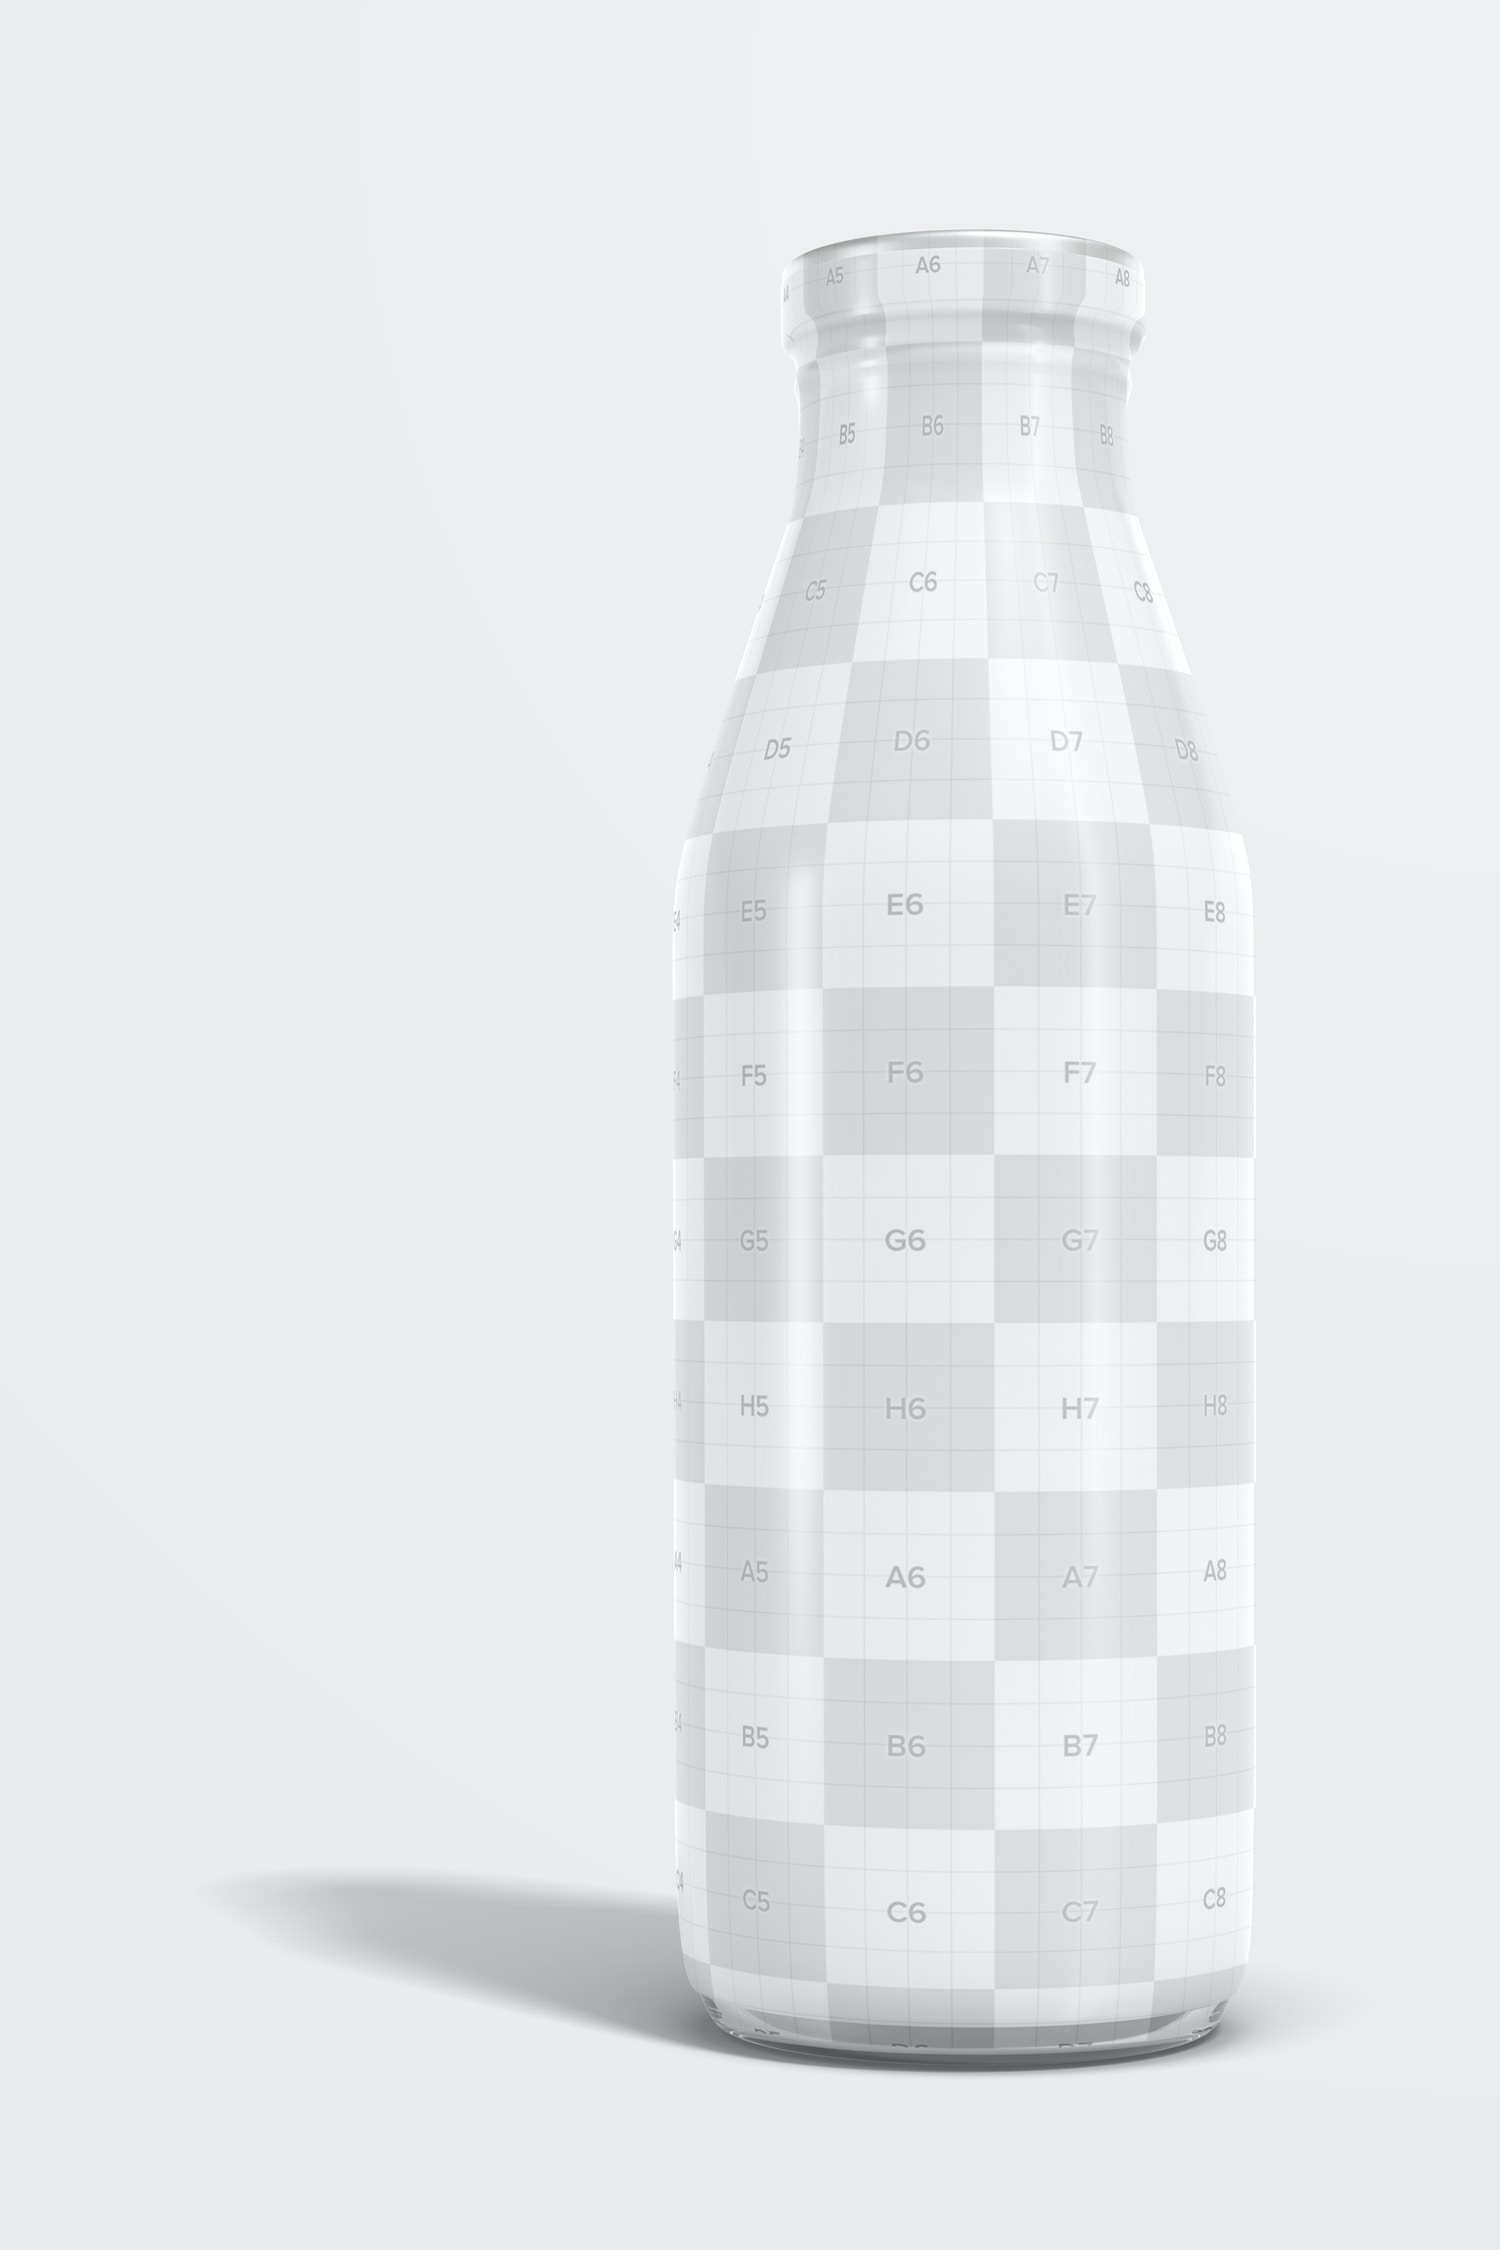 The bottle is full-covered in plastic, so you have a lot of space to place your design.